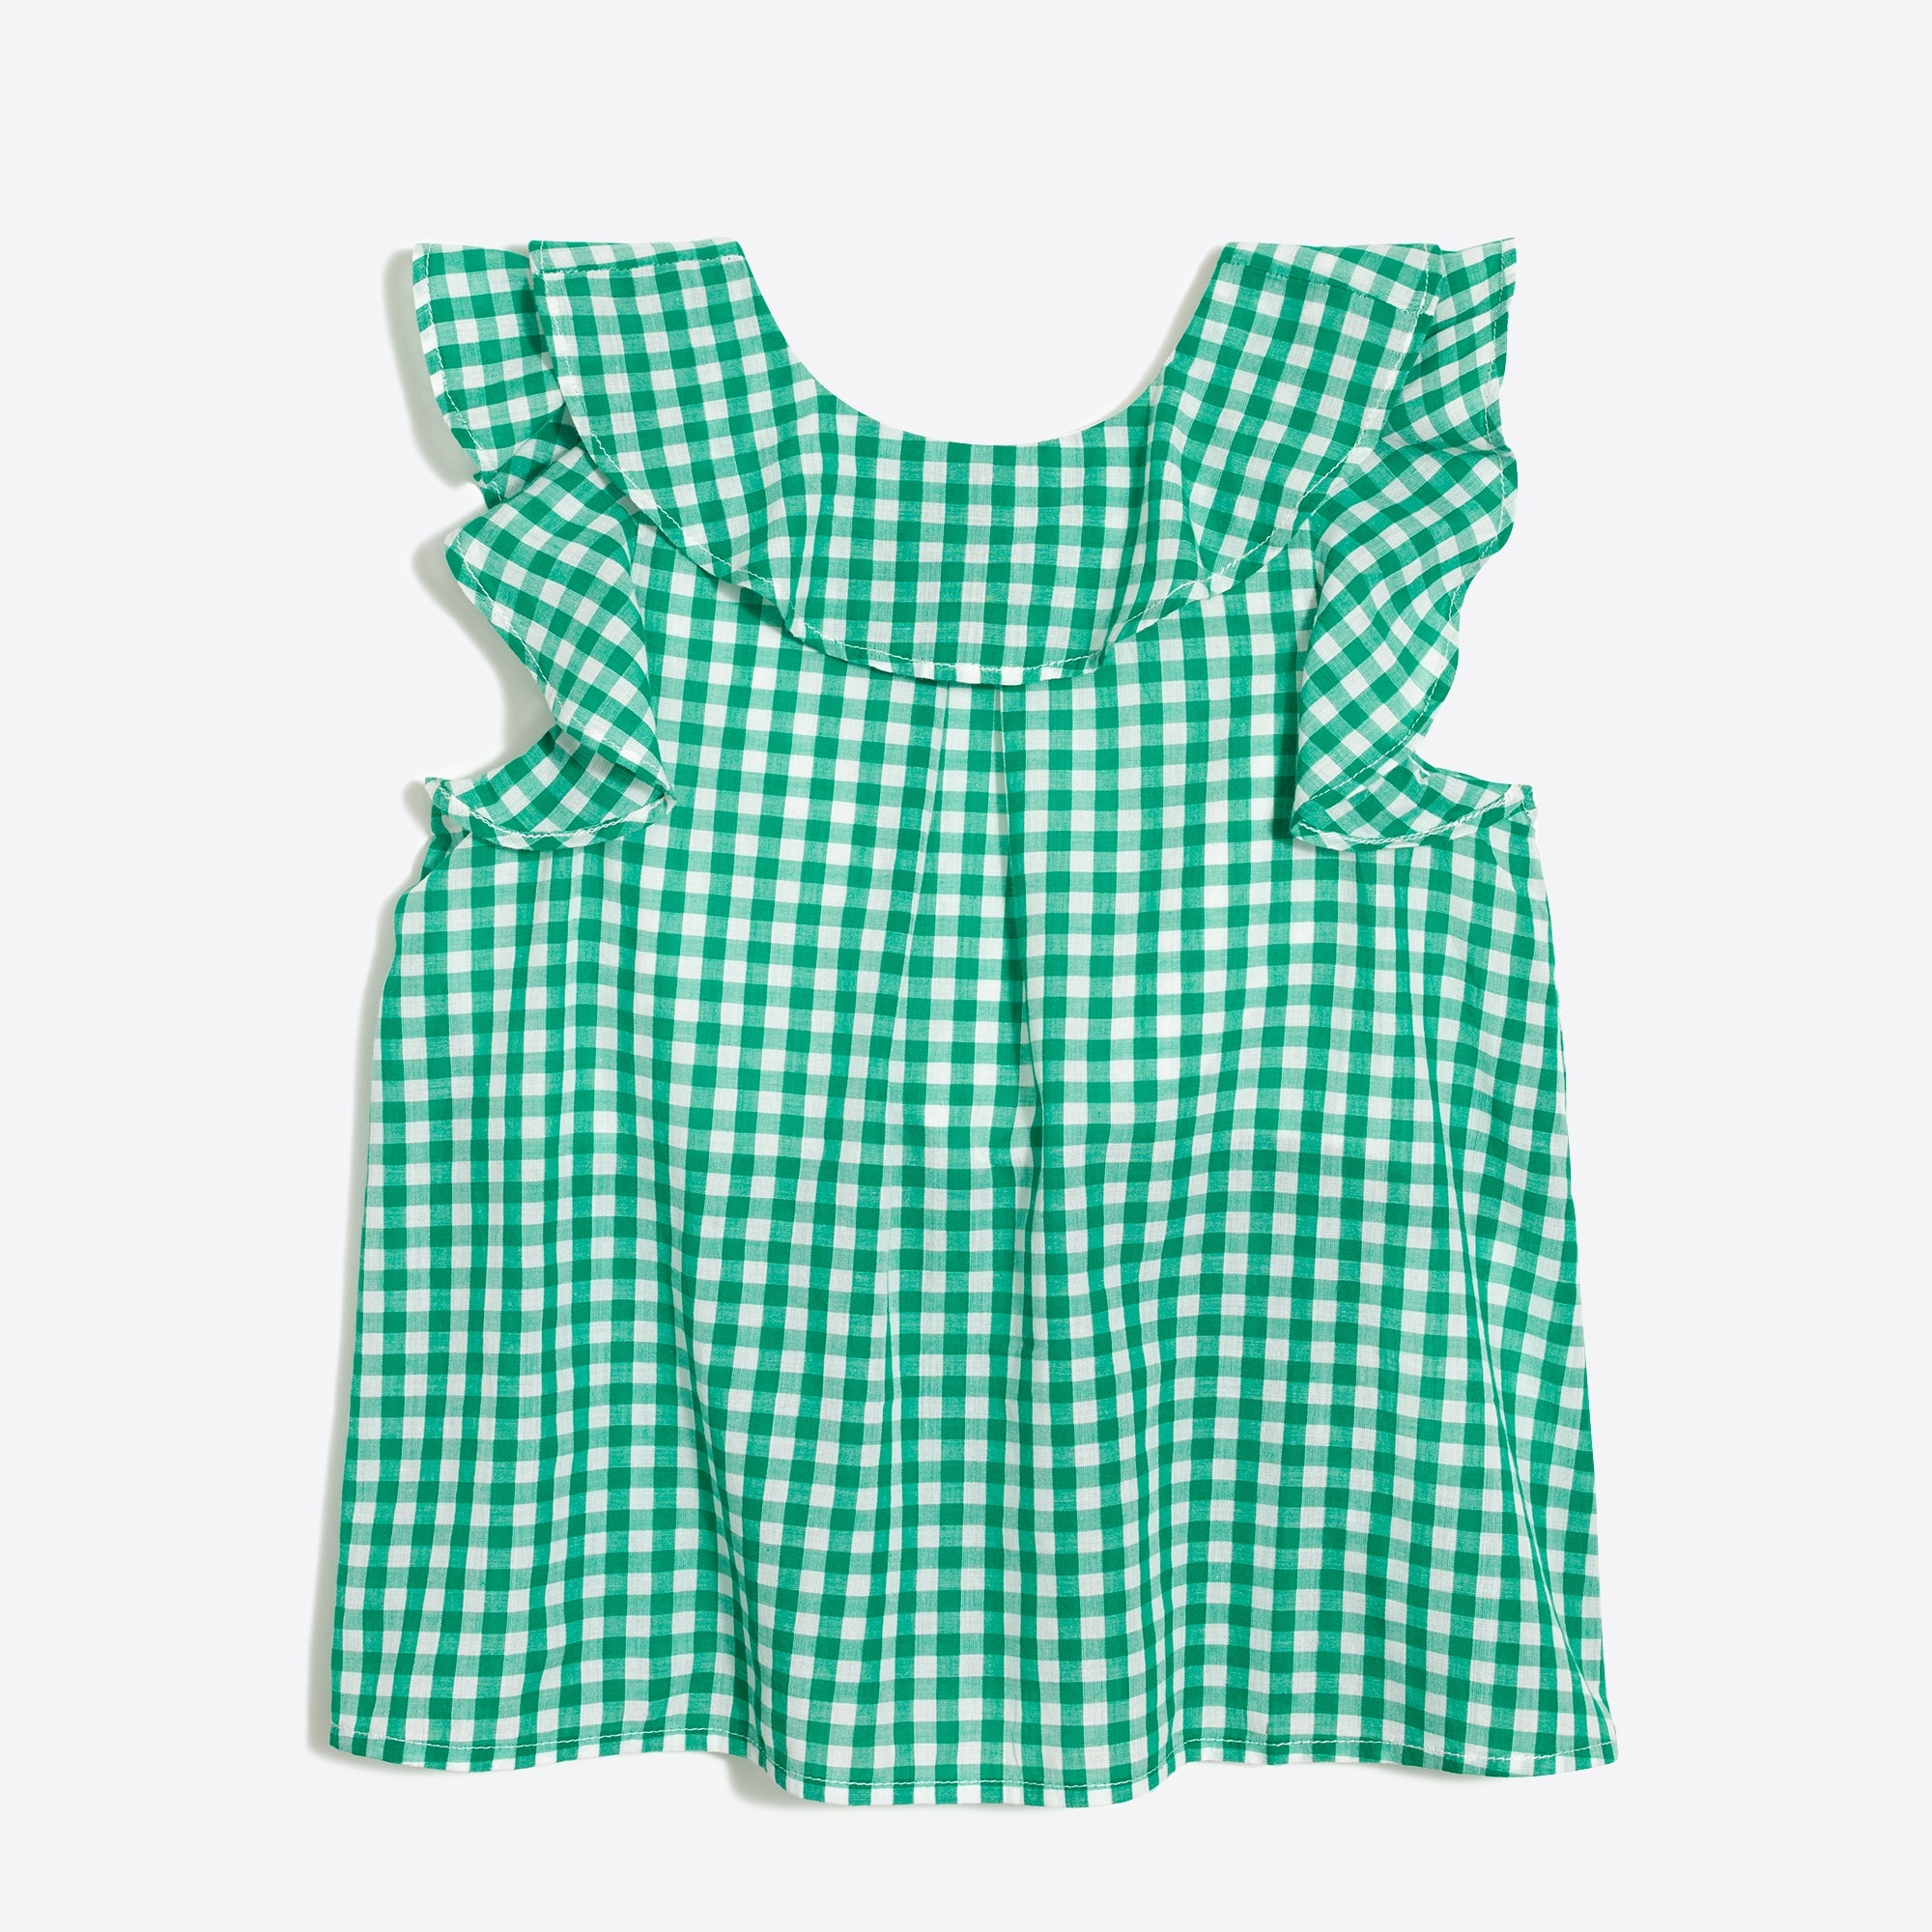 Girls' ruffle tank top in gingham